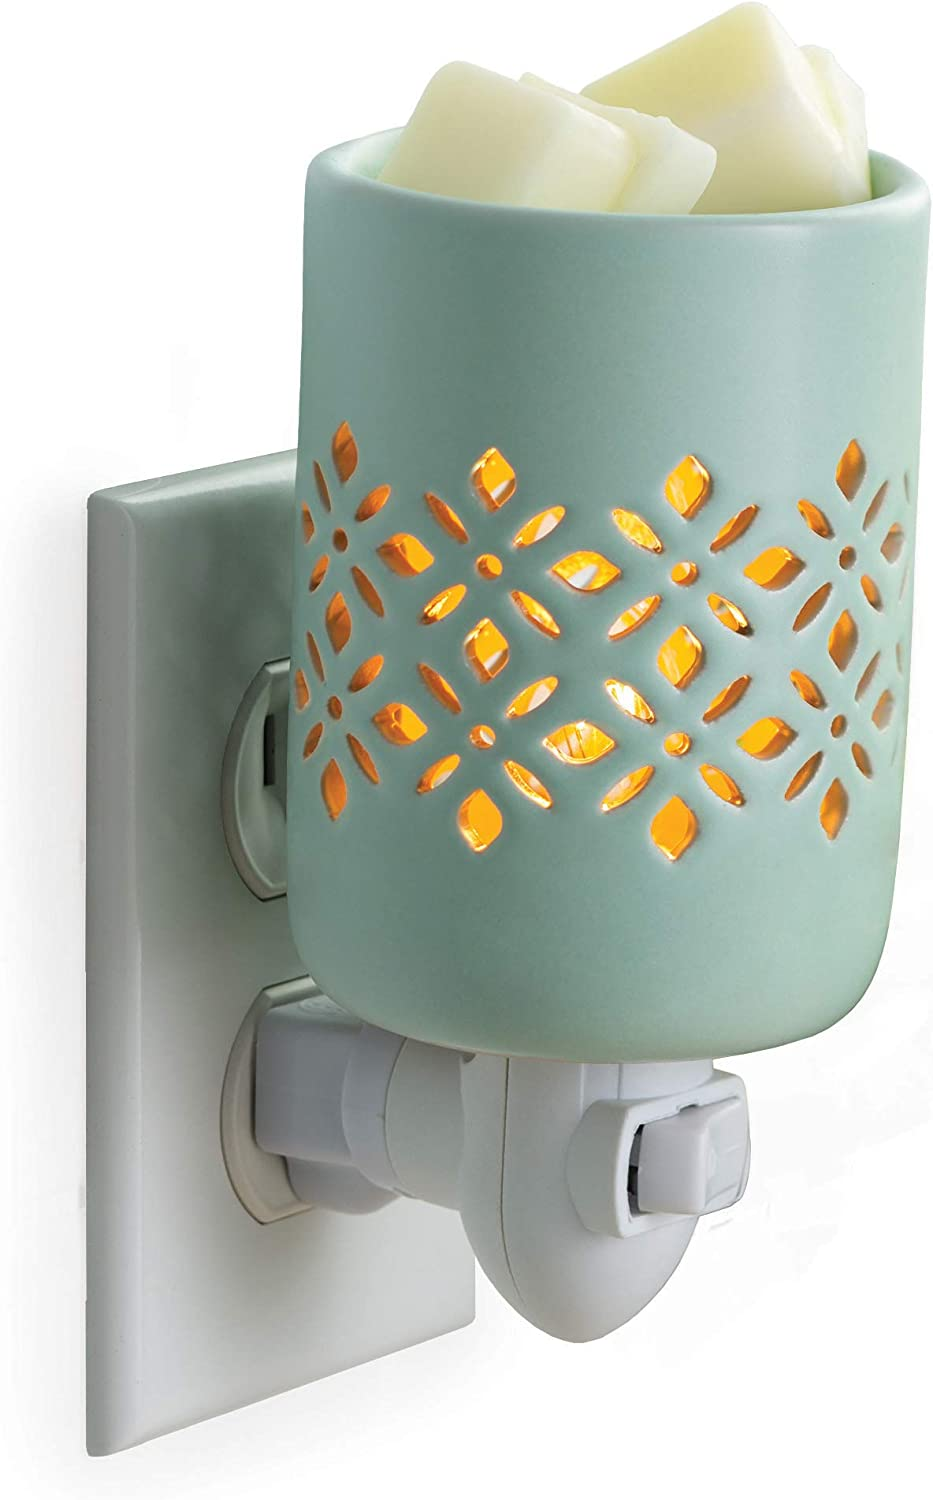 CANDLE WARMERS ETC Pluggable Fragrance Warmer- Decorative Plug-in for Warming Scented Candle Wax Melts and Tarts or Fragrance Oils, Soft Mint